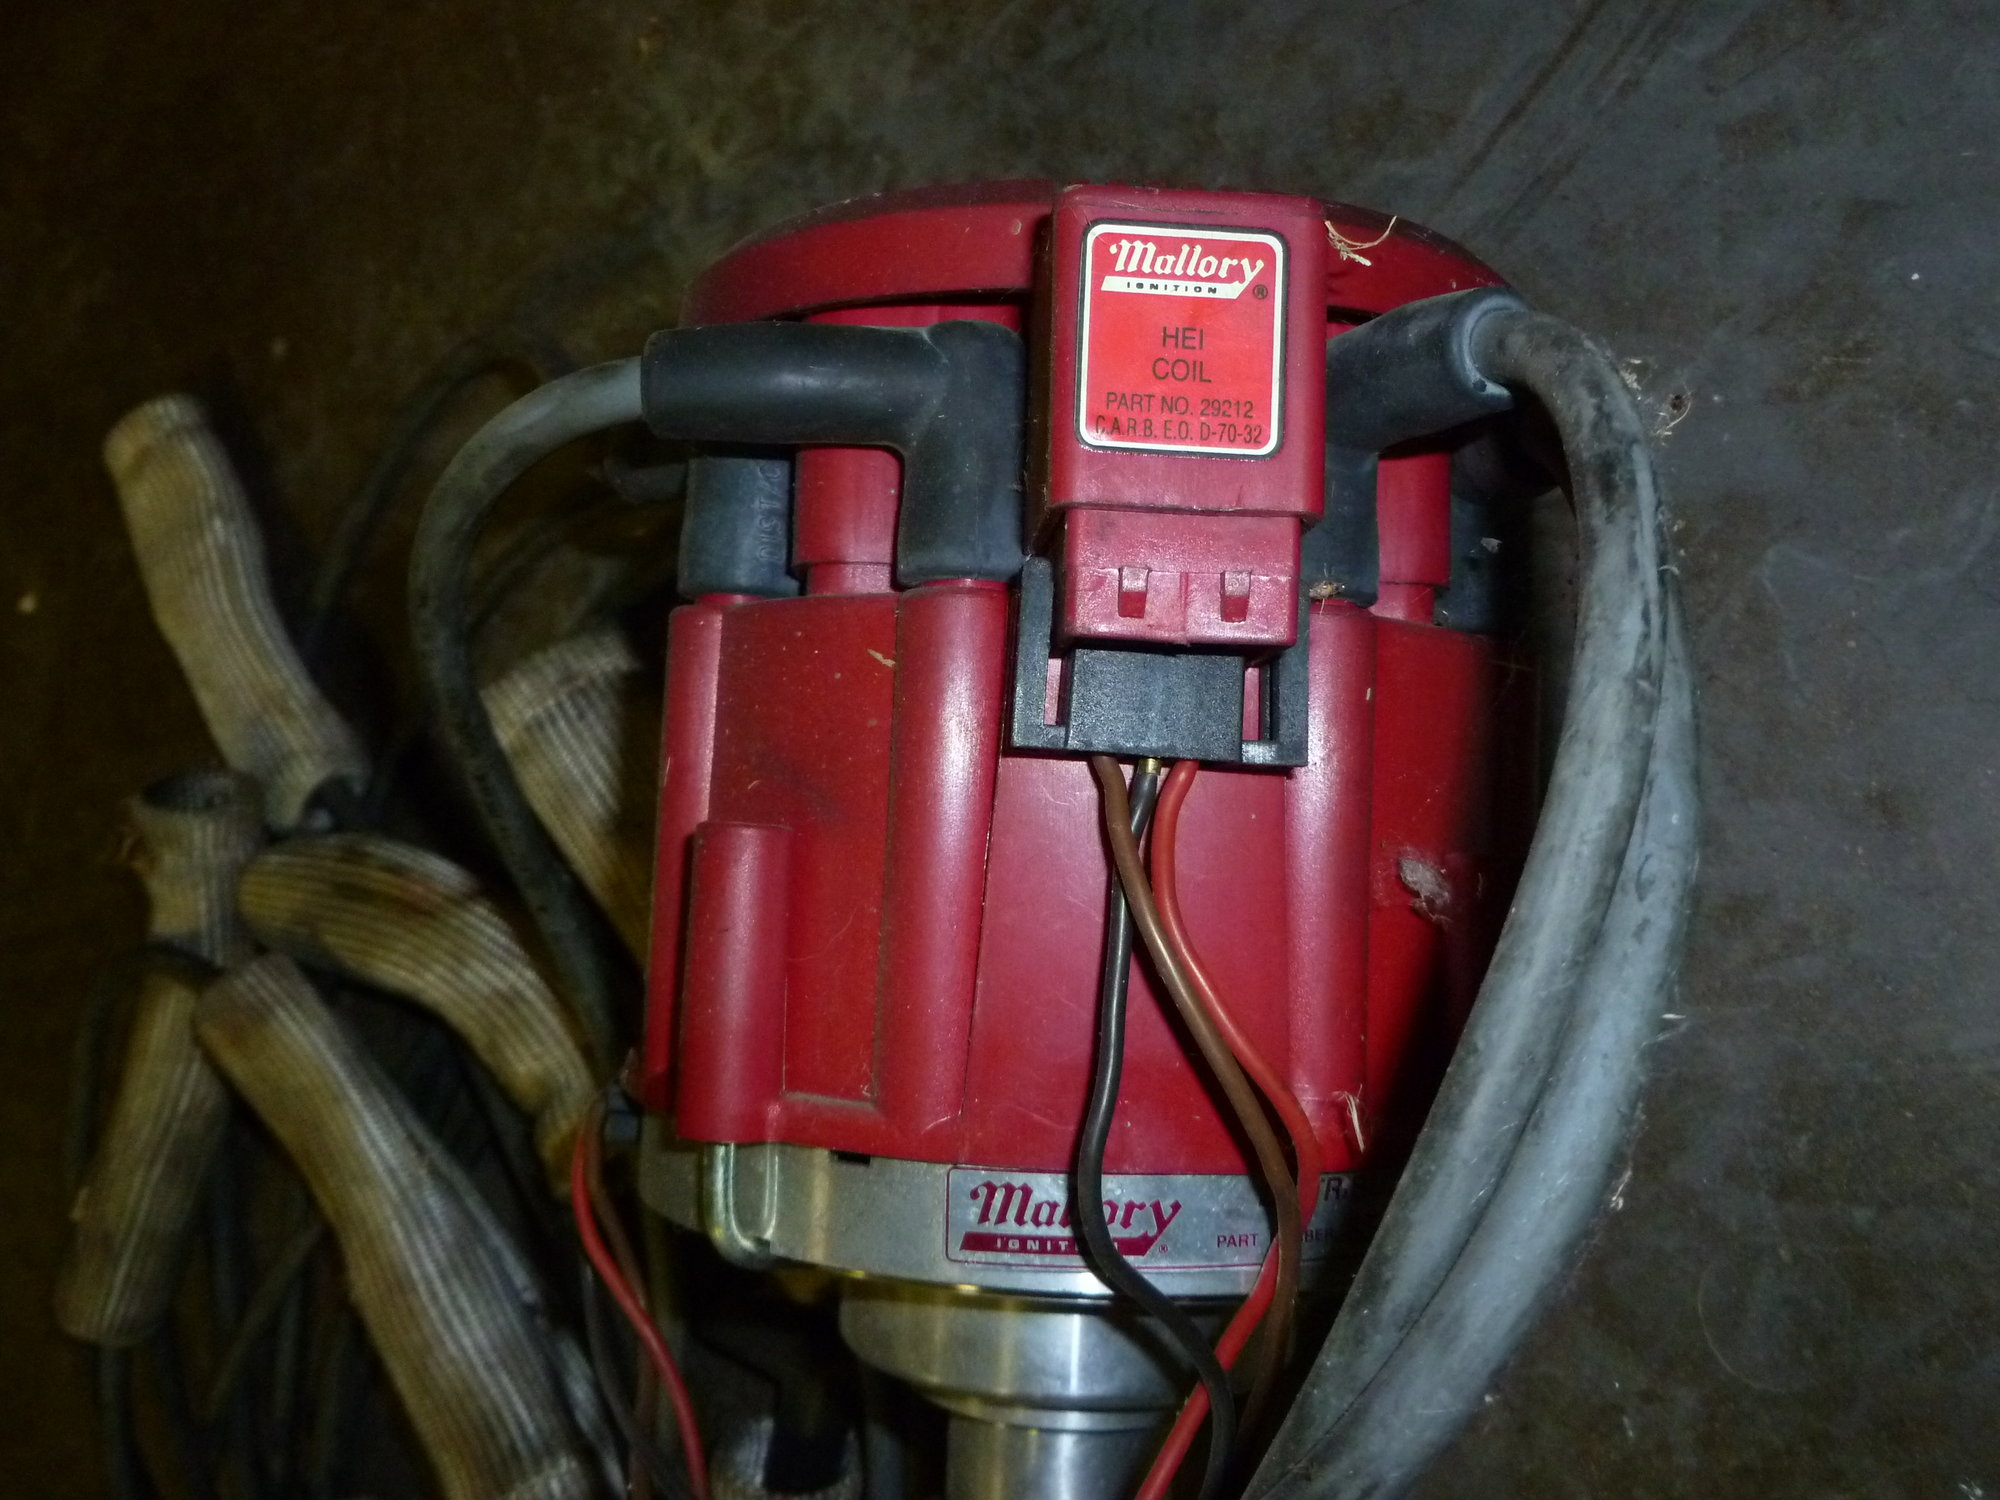 Wiring Orig. Fuel Pump to 350 Carb motor! Help!?!? - Third ... on mallory furniture, mallory electronics, mallory gauges, mallory resistors, mallory battery,